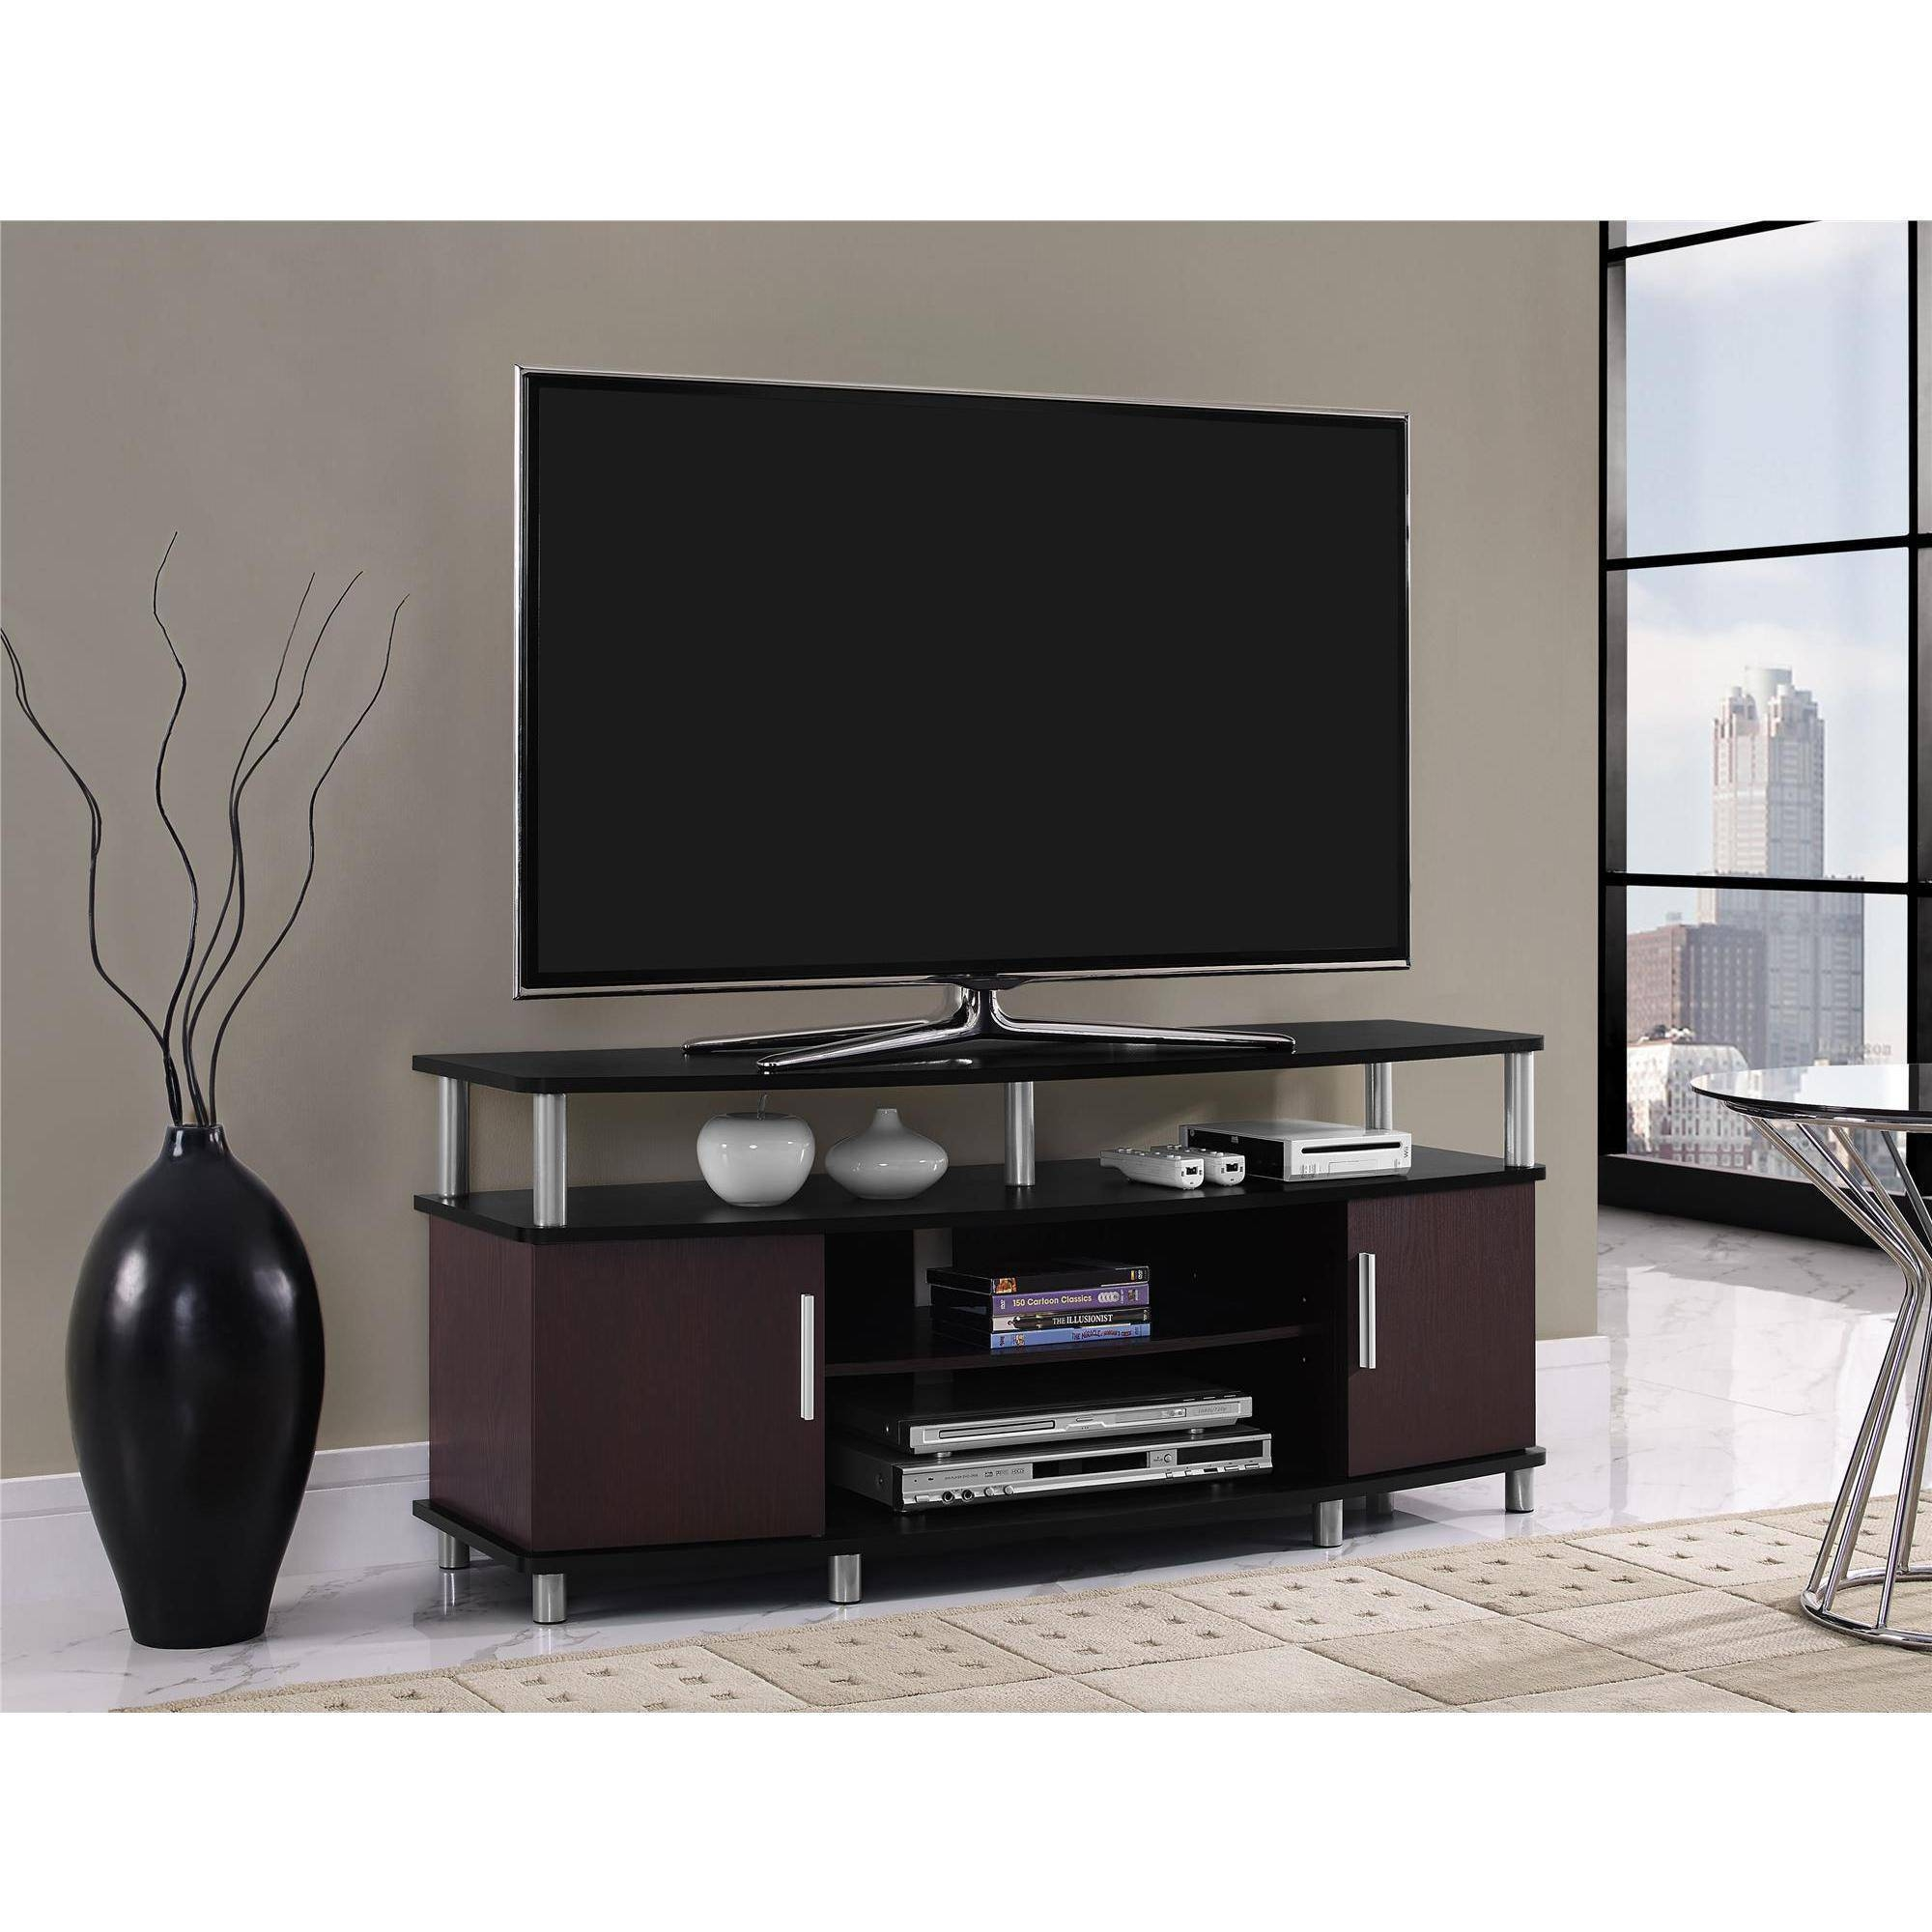 Tv Stands & Entertainment Centers - Walmart pertaining to Dark Tv Stands (Image 13 of 15)